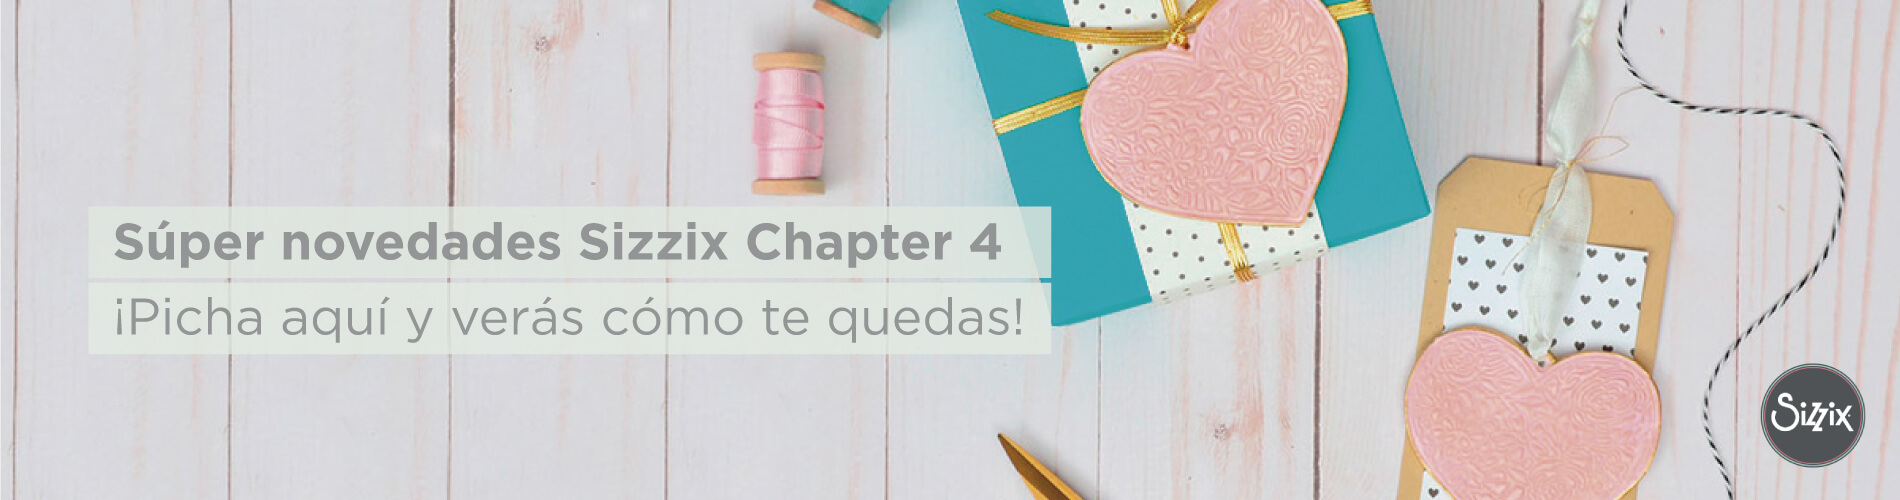 Novedad Sizzix Chapter 4